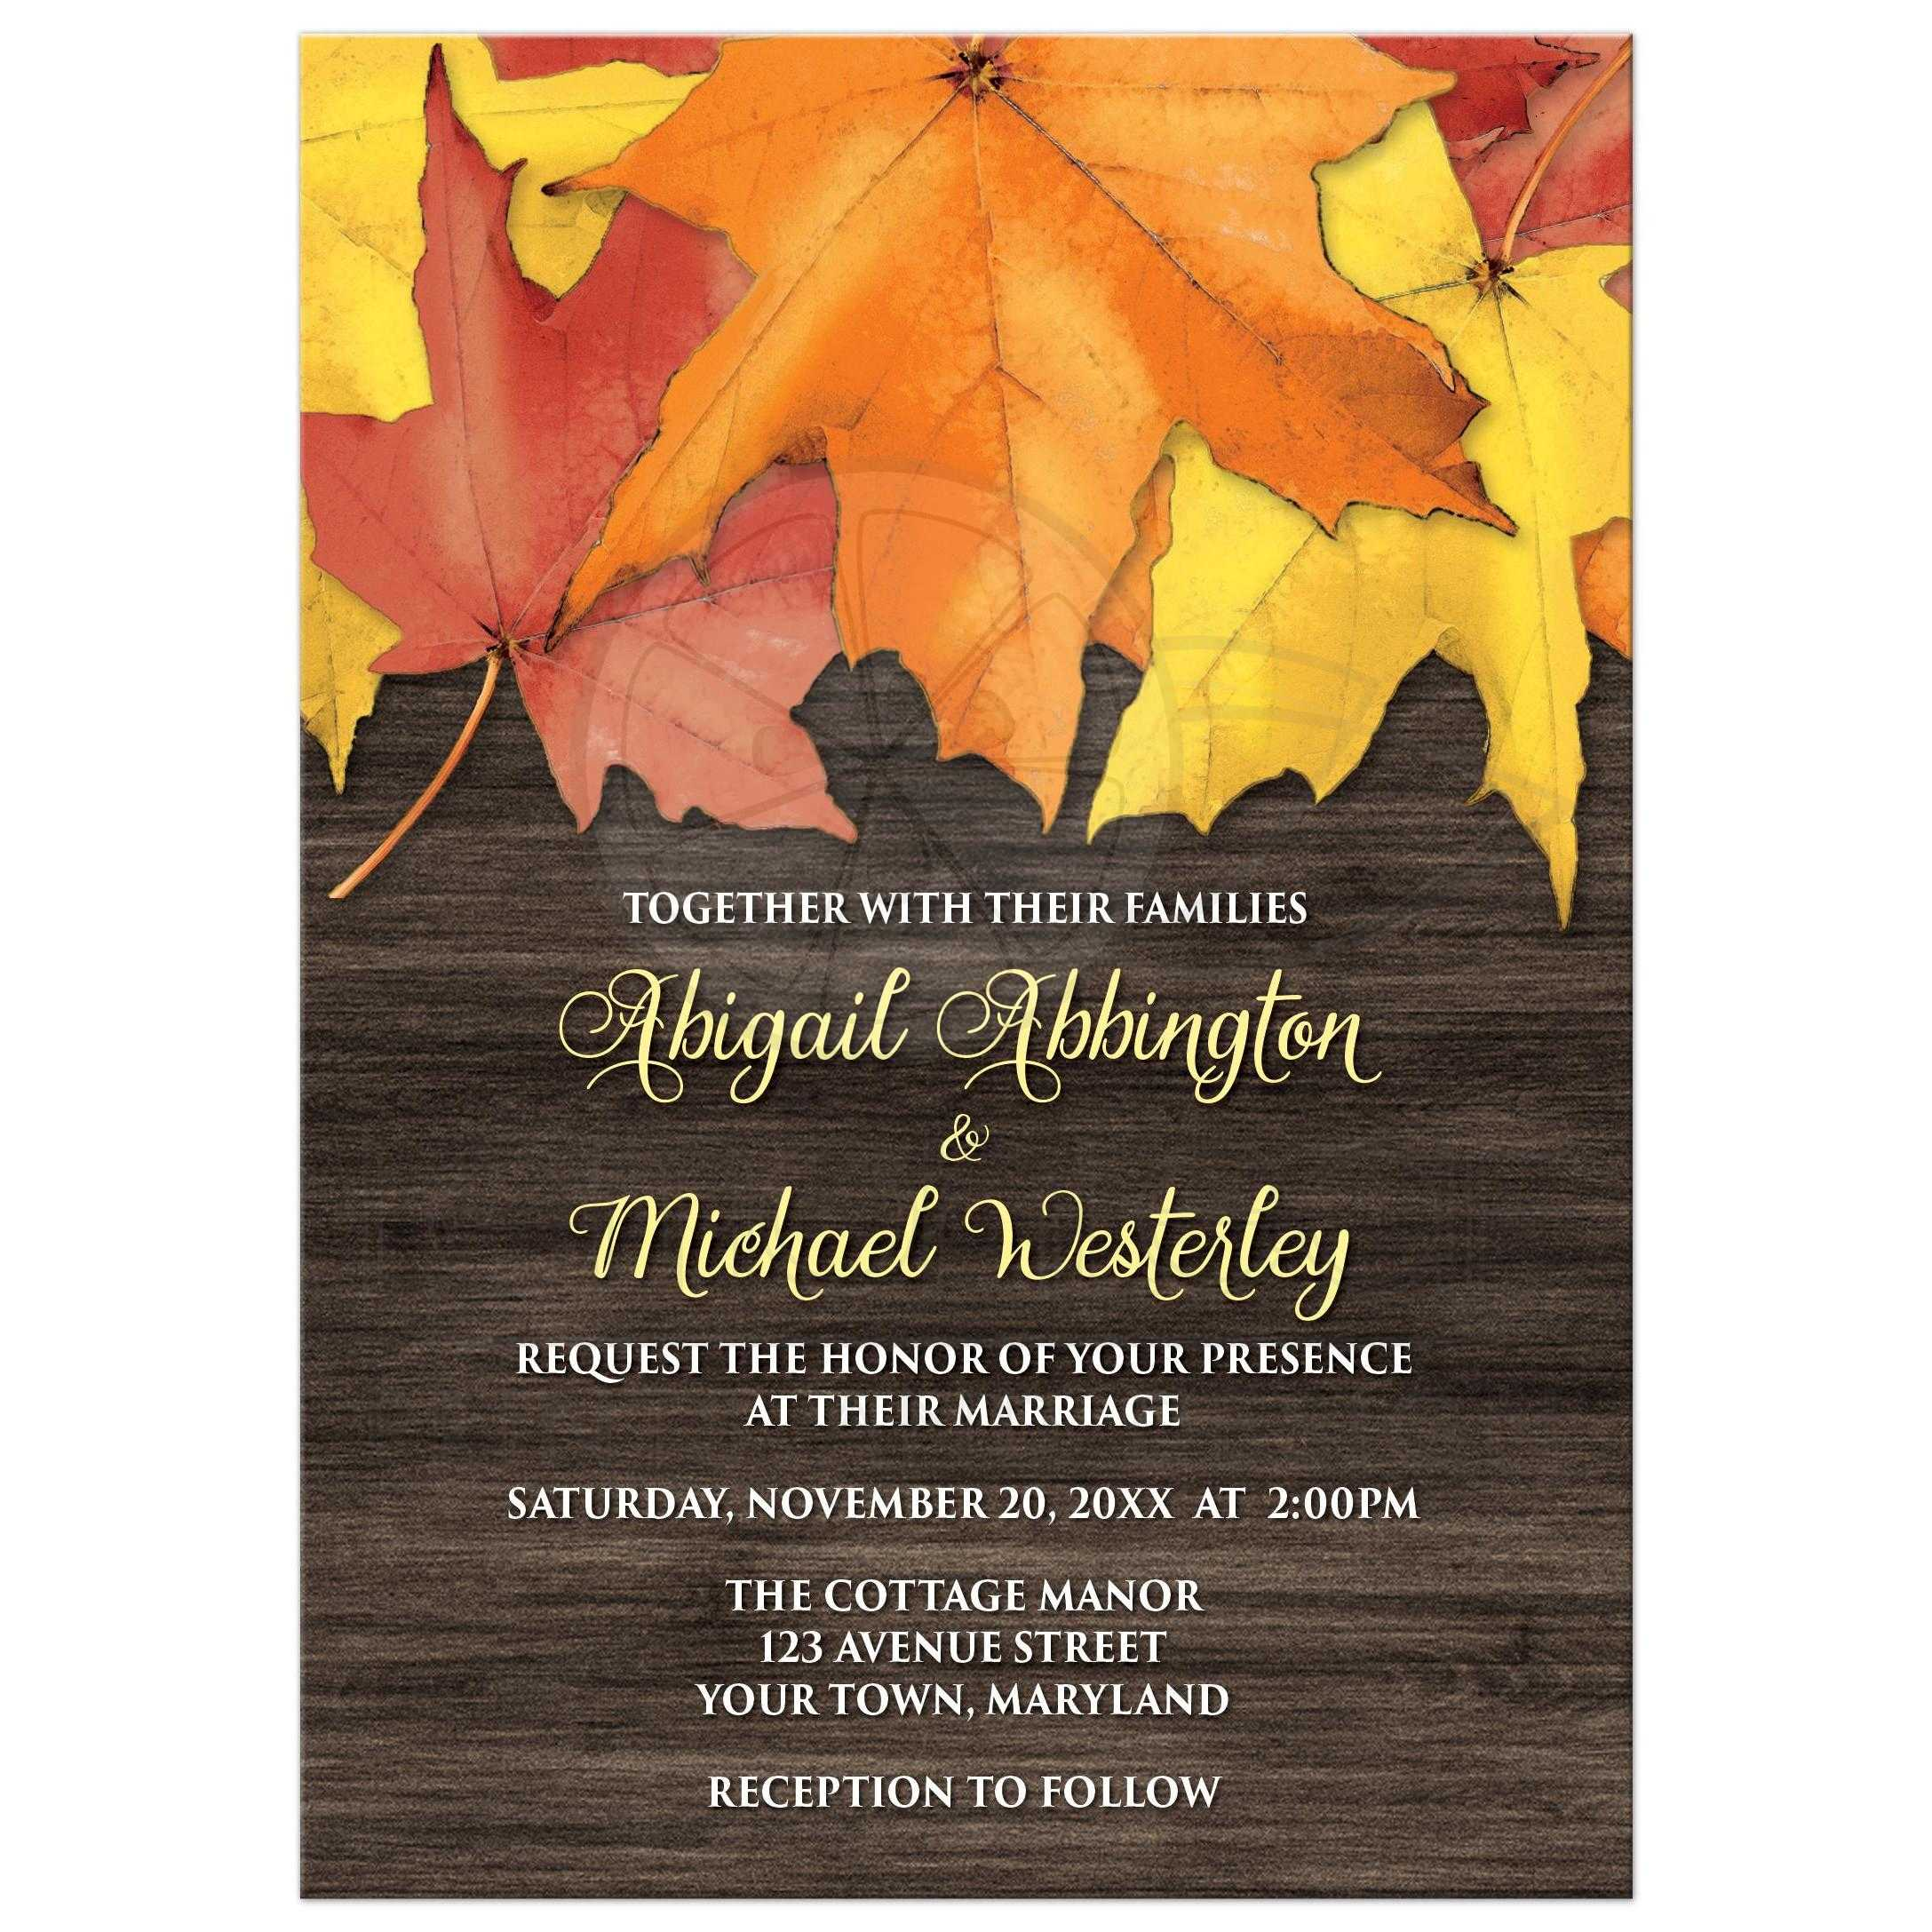 Invitations - Rustic Autumn Leaves and Wood